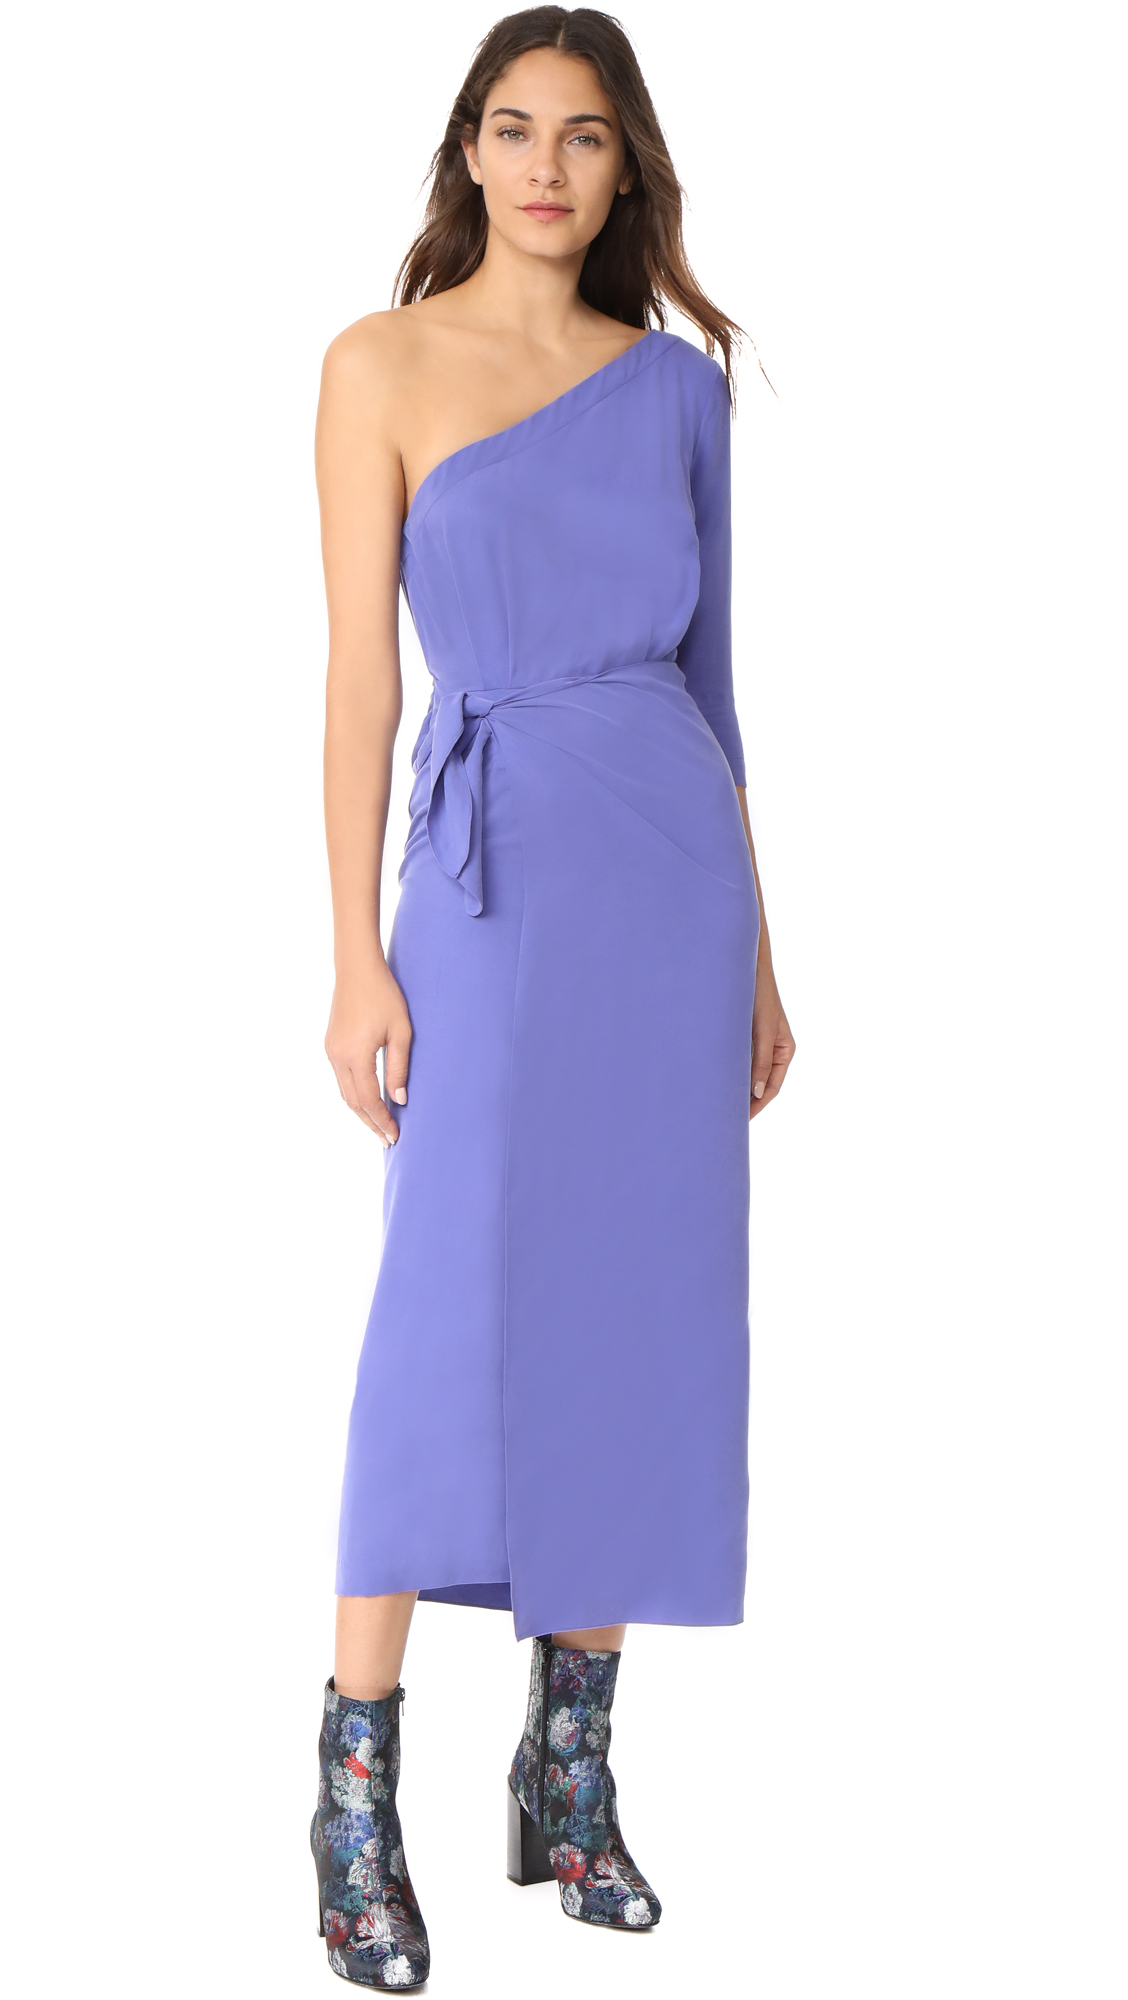 Mara Hoffman Shirley One Shoulder Dress - Purple